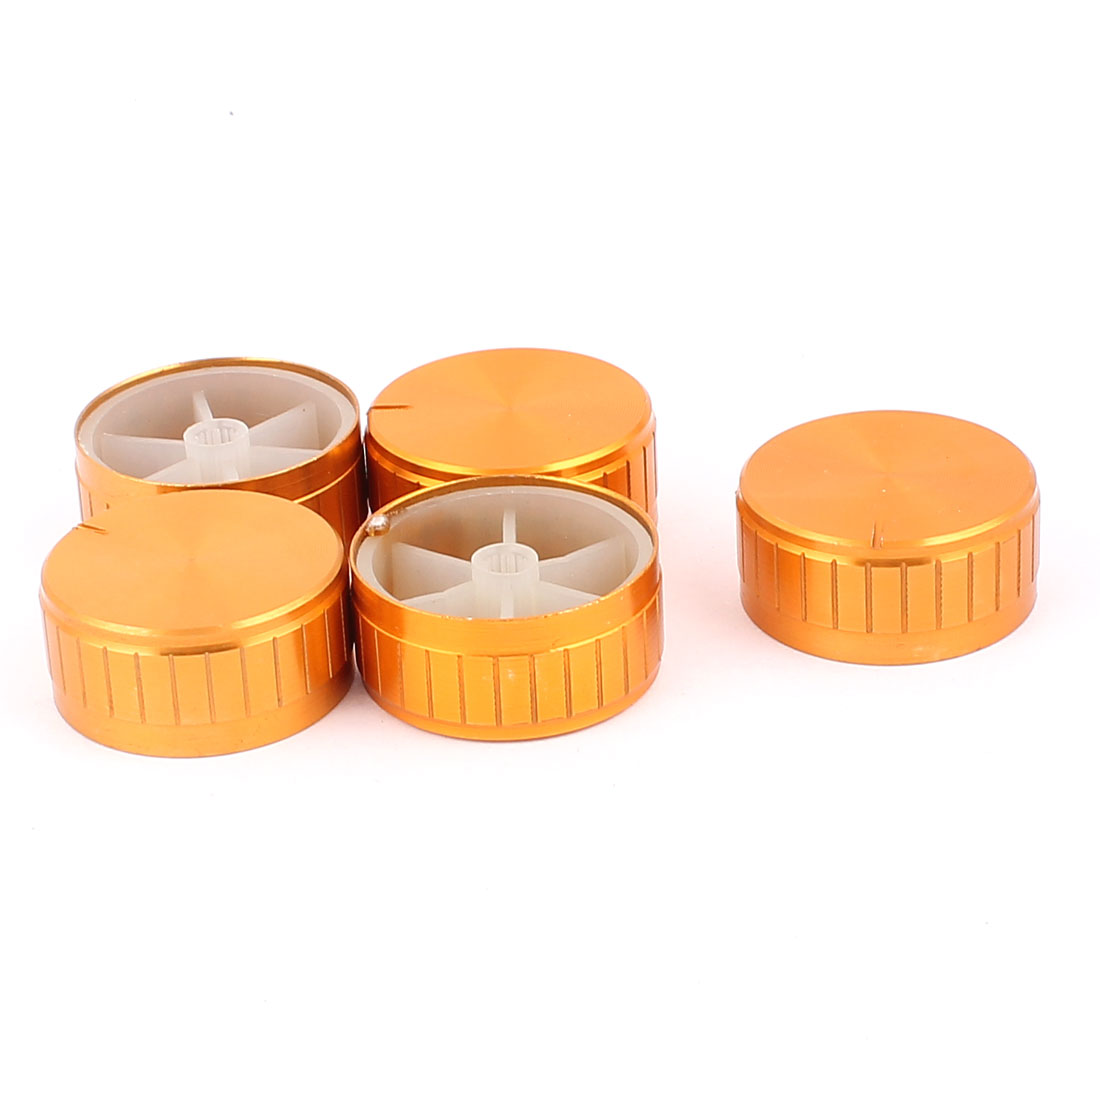 5 Pcs 40mm x 6mm Aluminium Alloy Potentiometer Control Knob Volume Cap Knurled Button Gold Tone